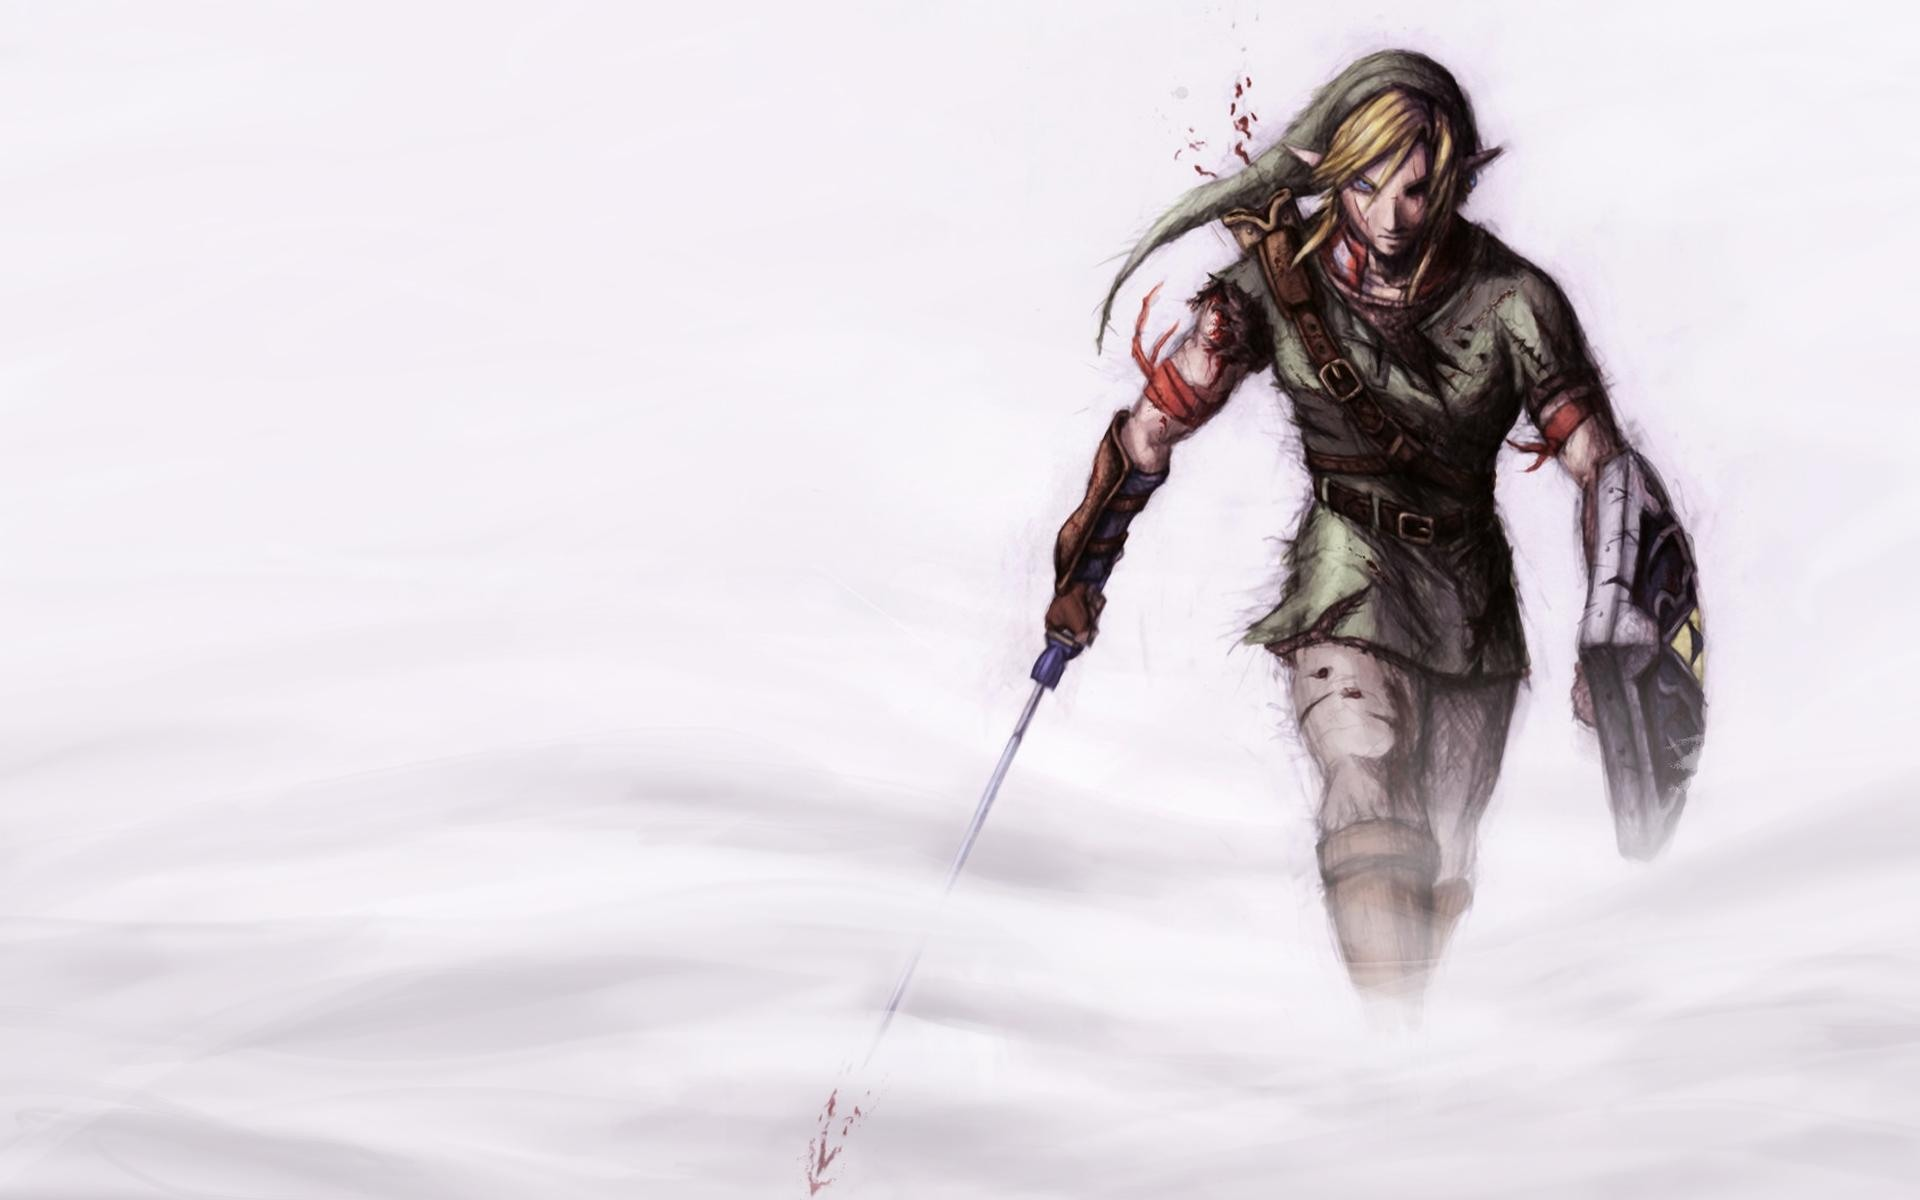 Link from Legend of Zelda desktop wallpaper 1920x1200